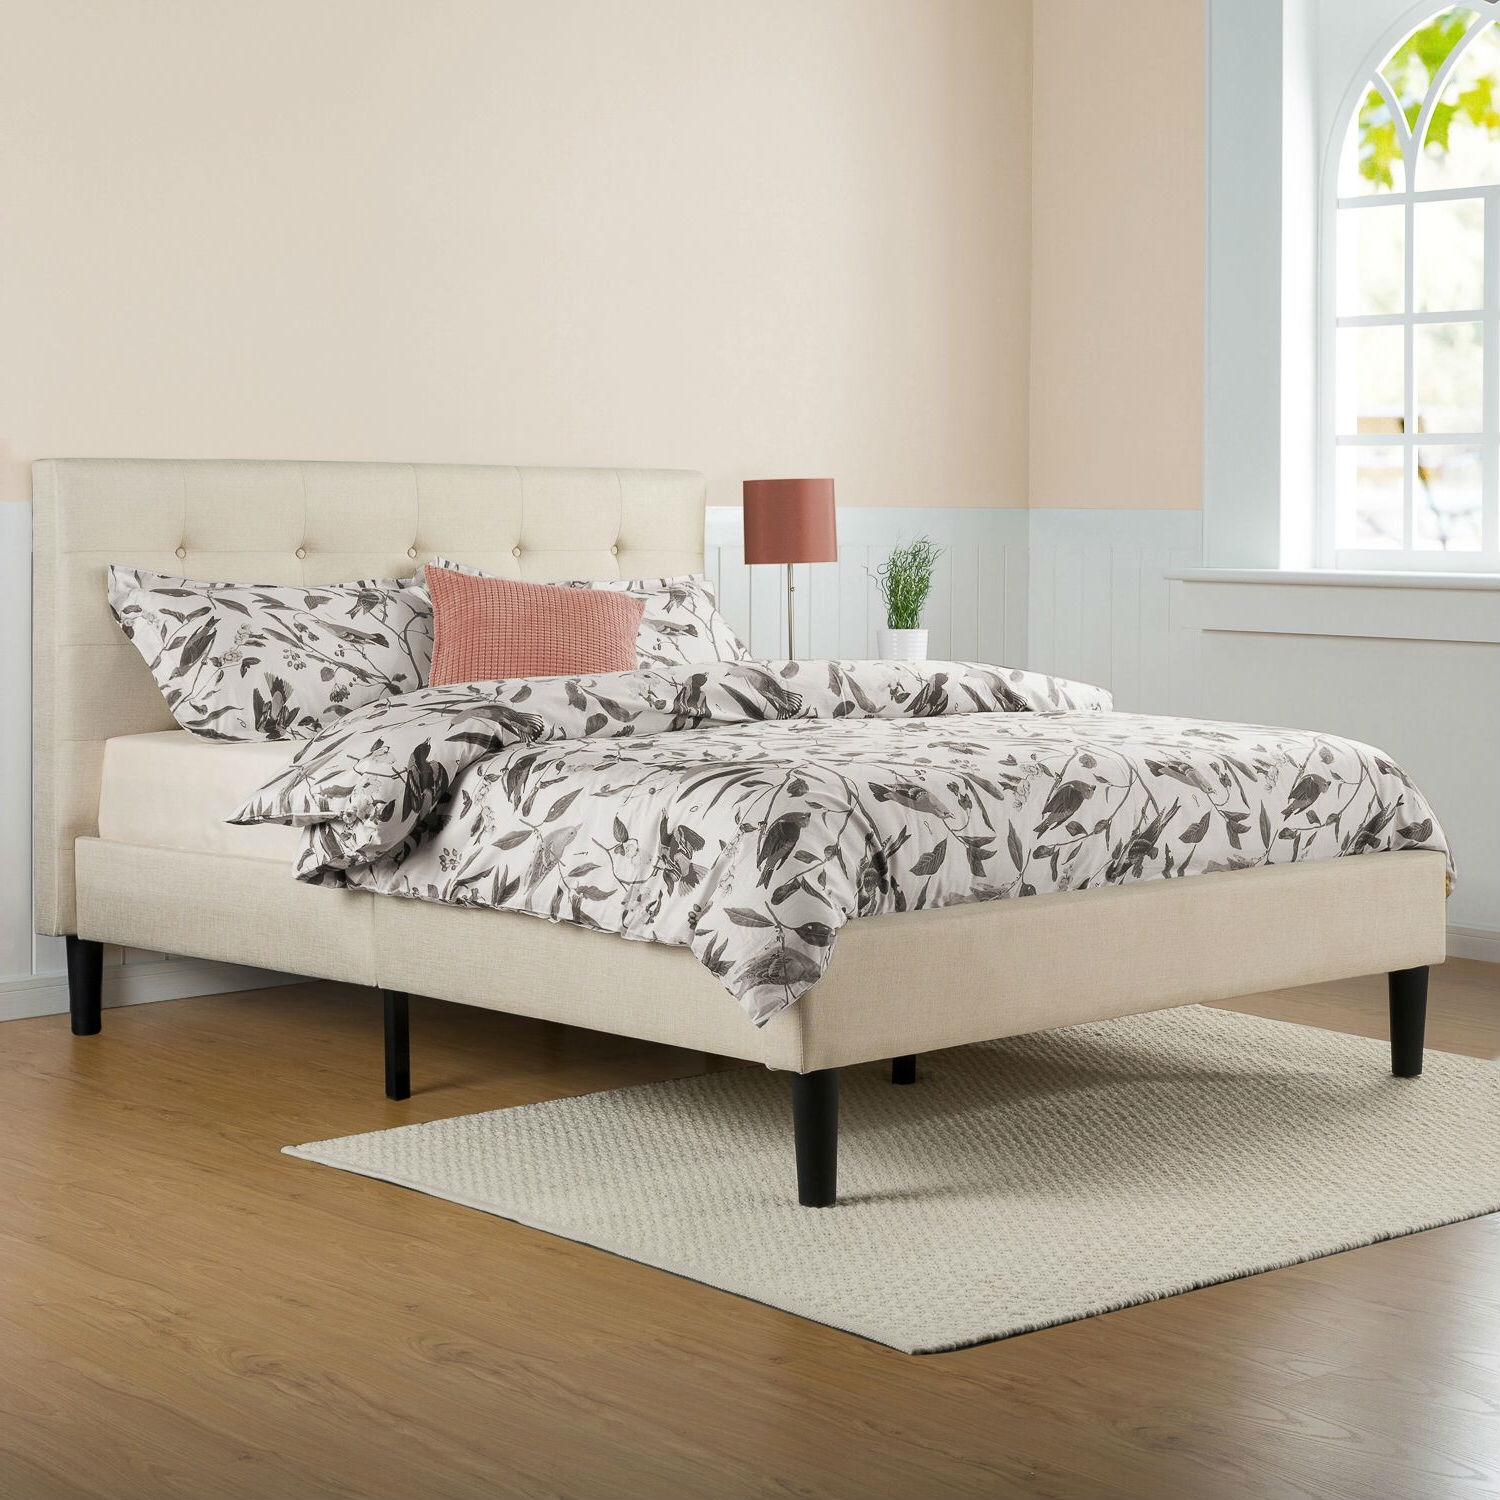 retail price 39900 - Upholstered Bed Frame King